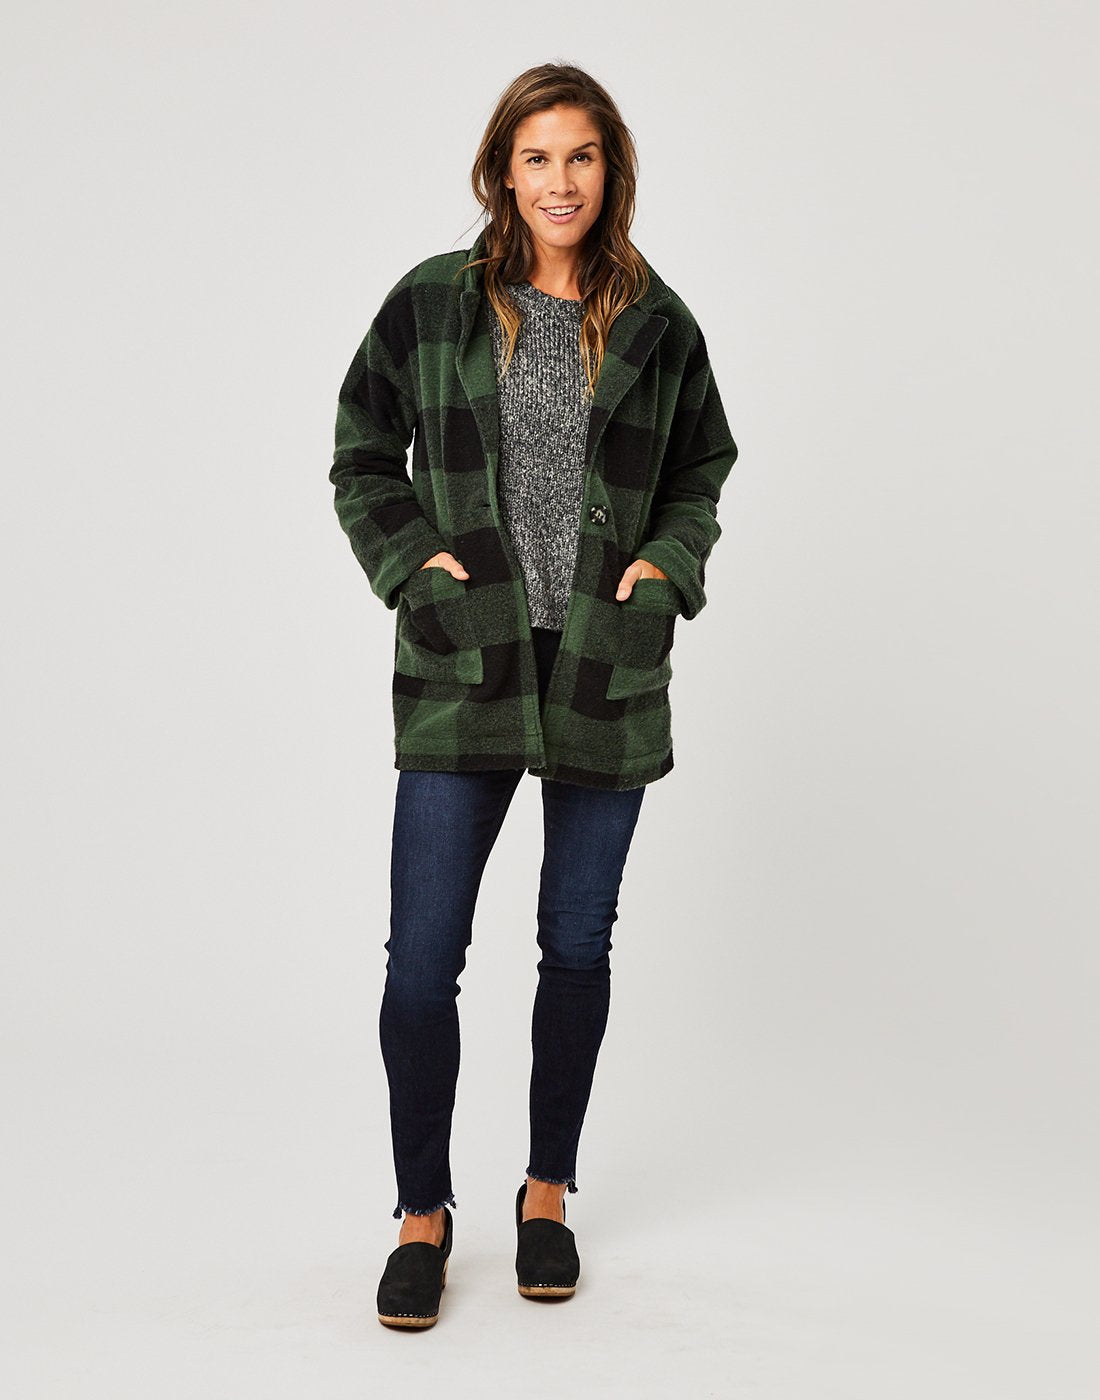 Carve Designs Fairview Fleece Topper - Sale